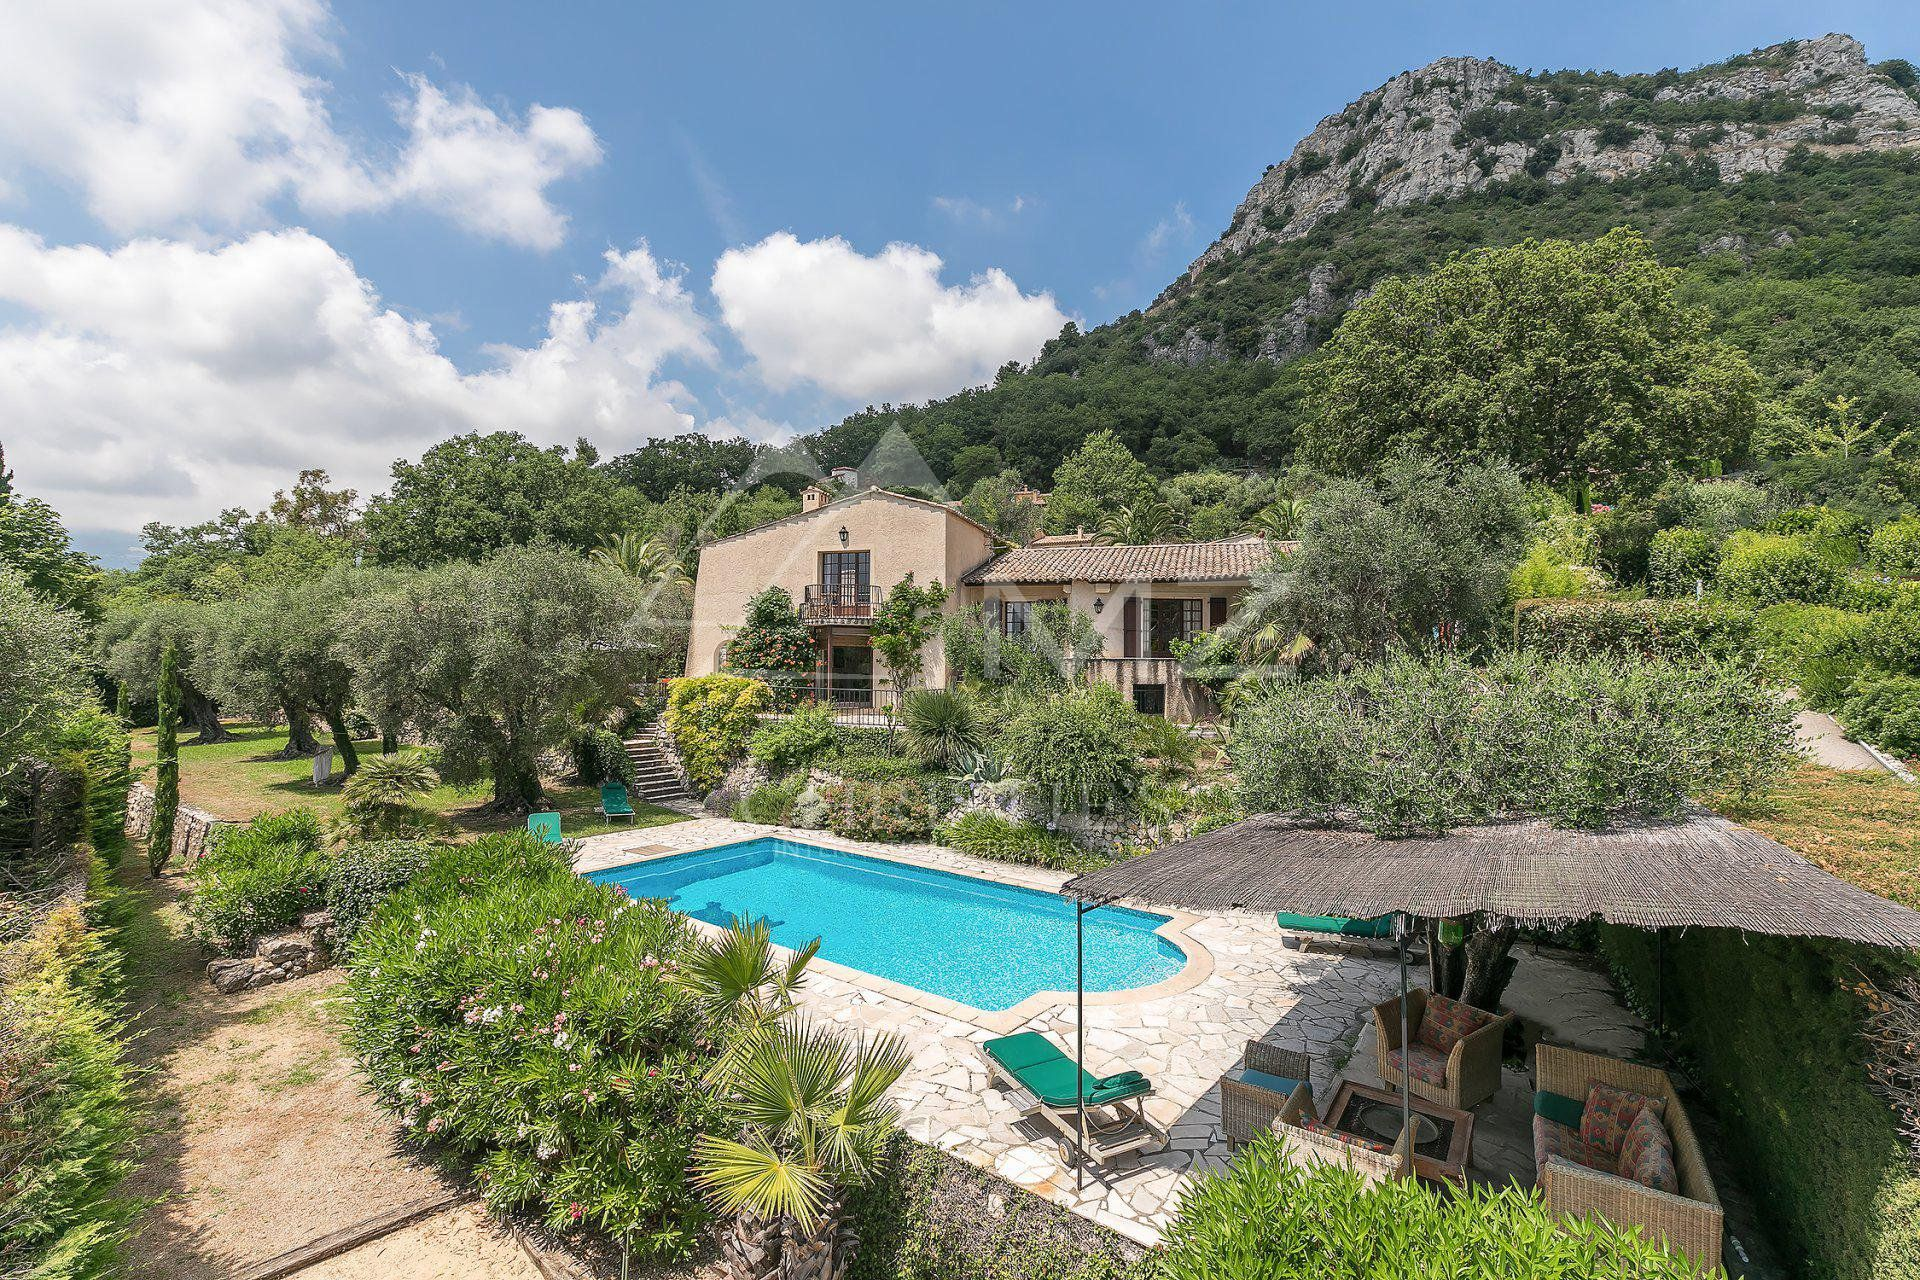 Vence - Charming provencal villa in a peaceful area